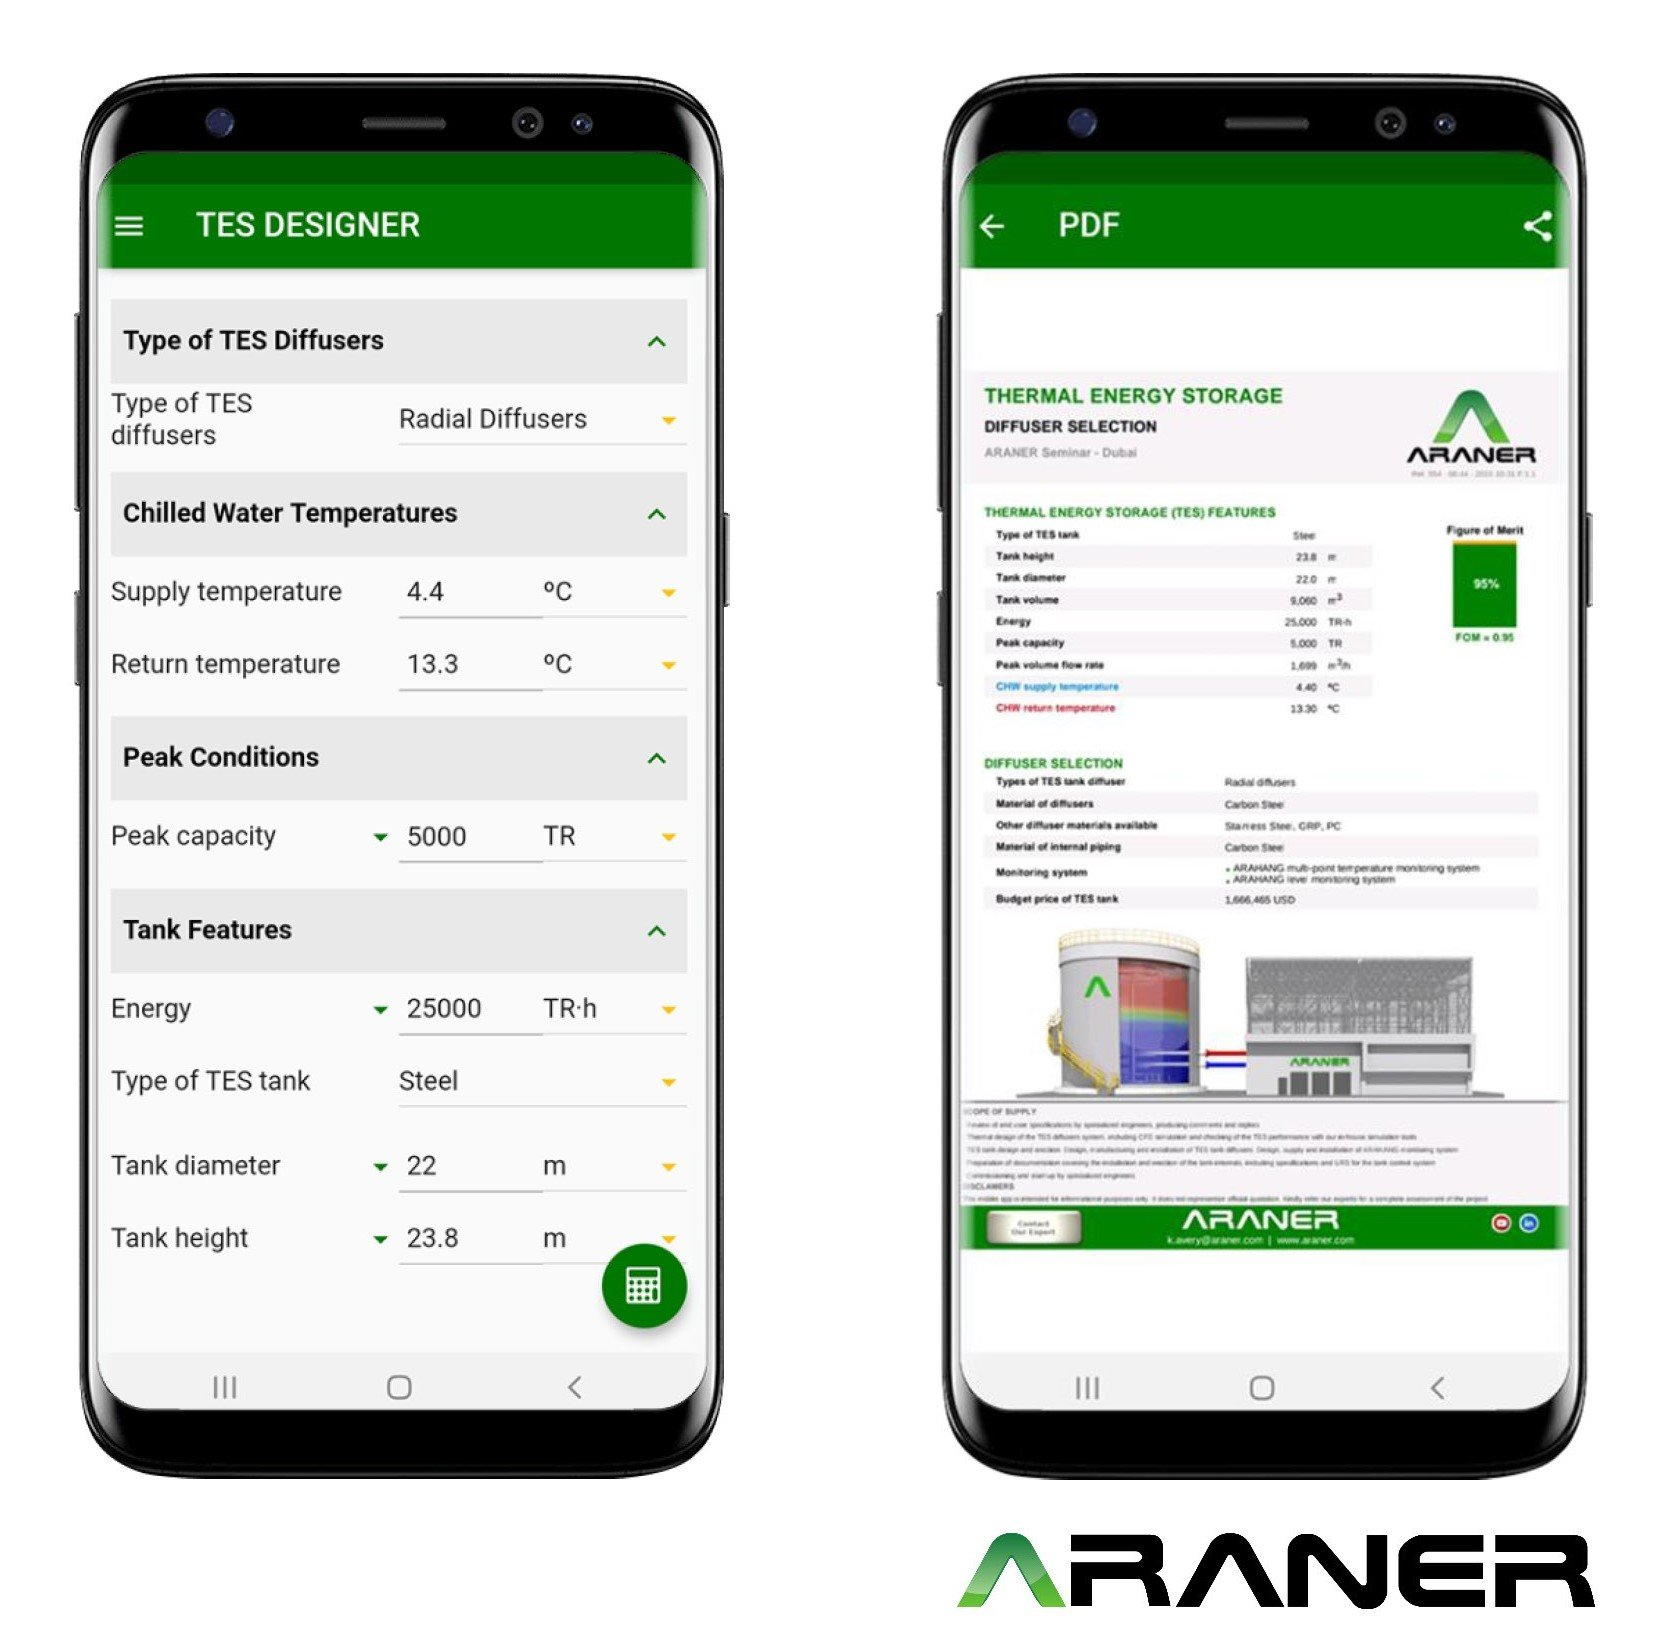 araner tes application with real calculations